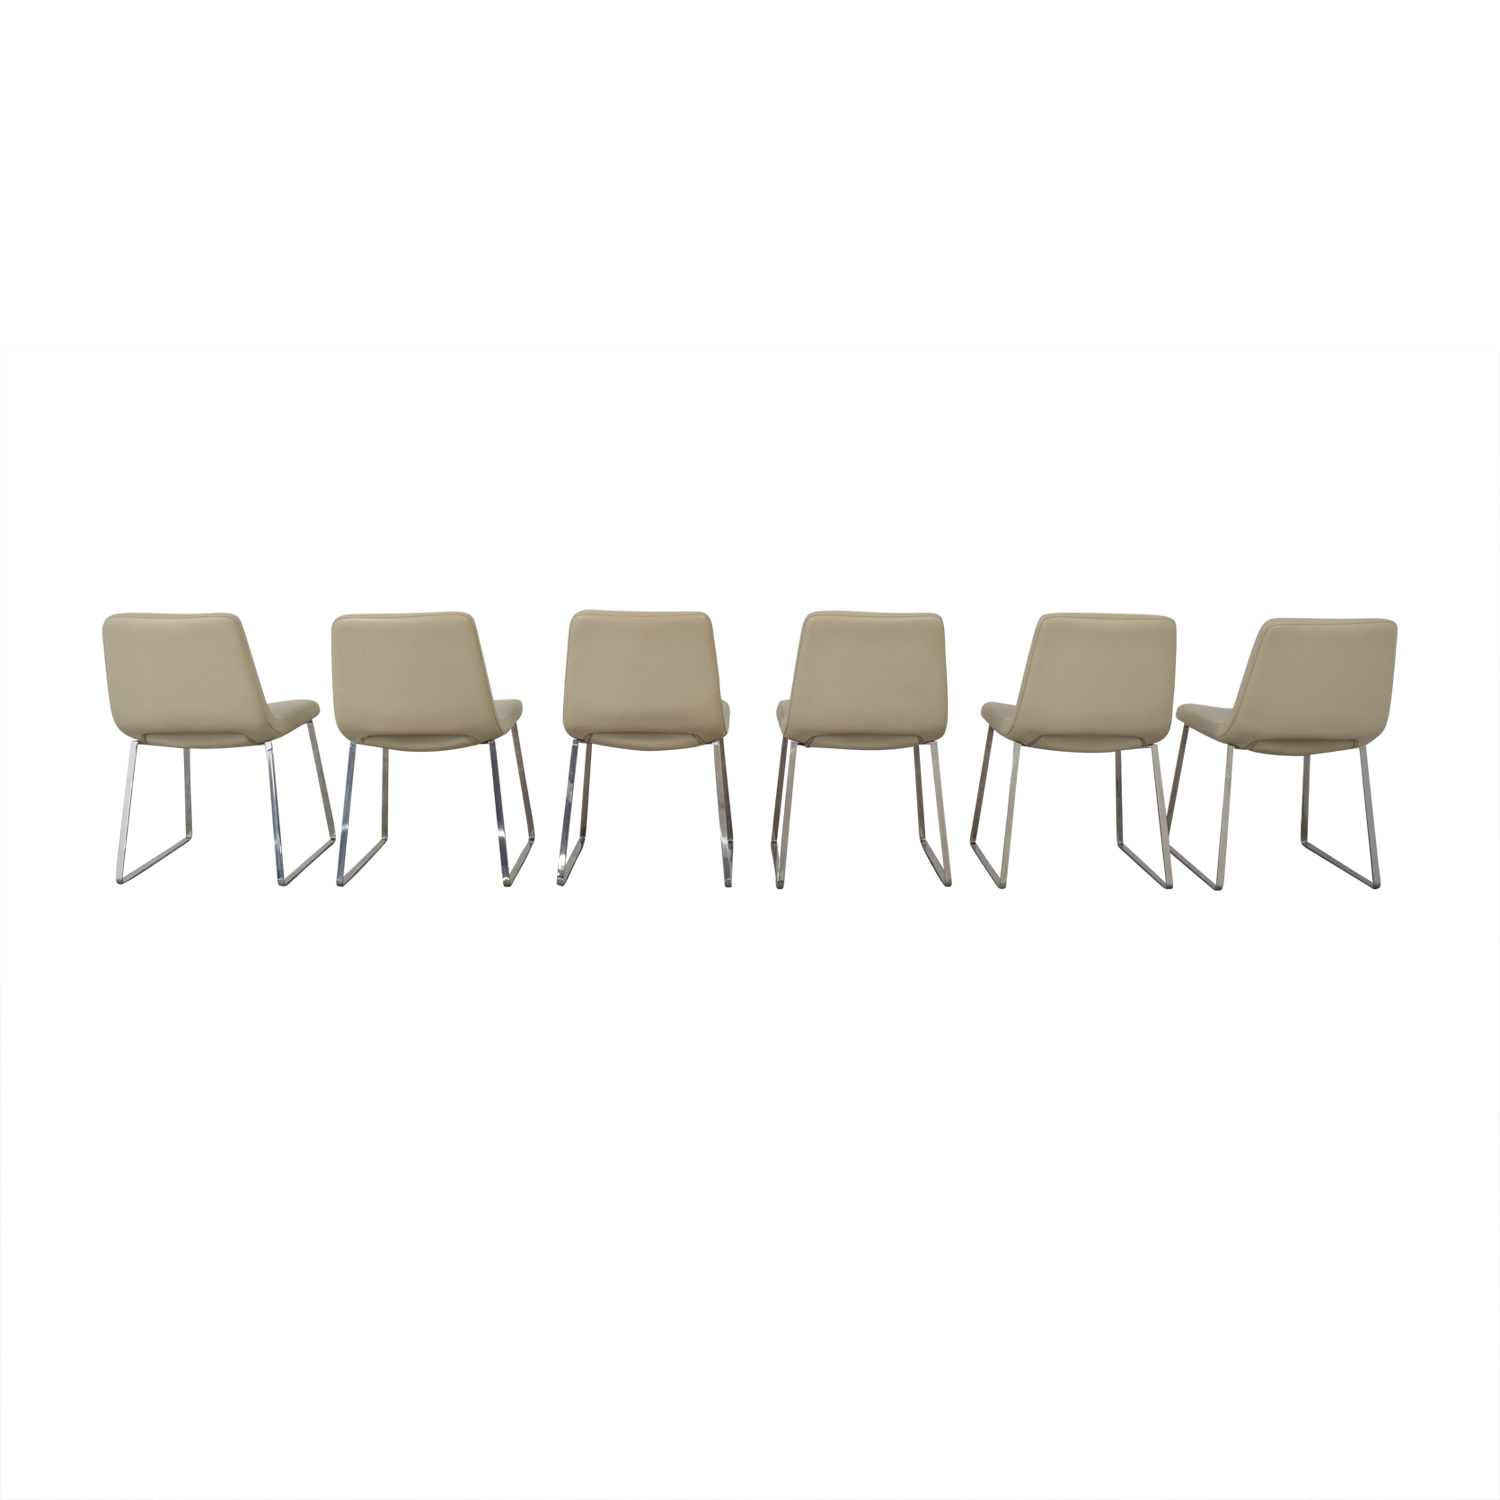 buy Tui Lifestyle Leather Dining Chair Set Tui Lifestyle Dining Chairs